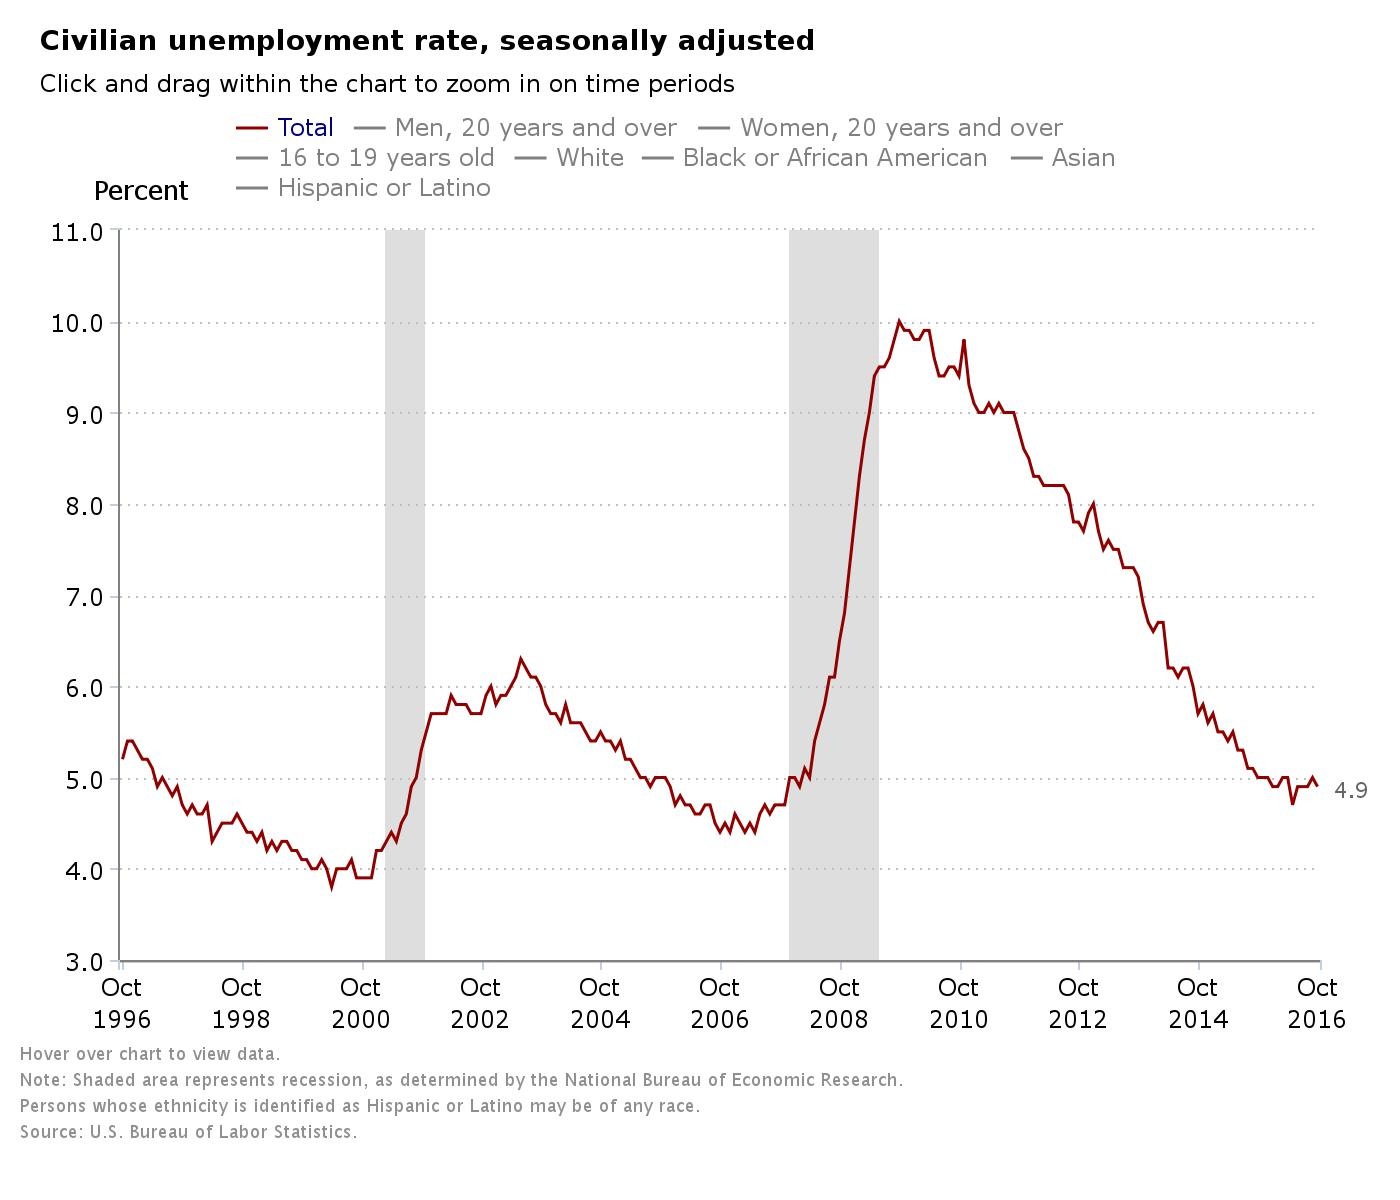 A look at the unemployment rate in October over the last 20 years.